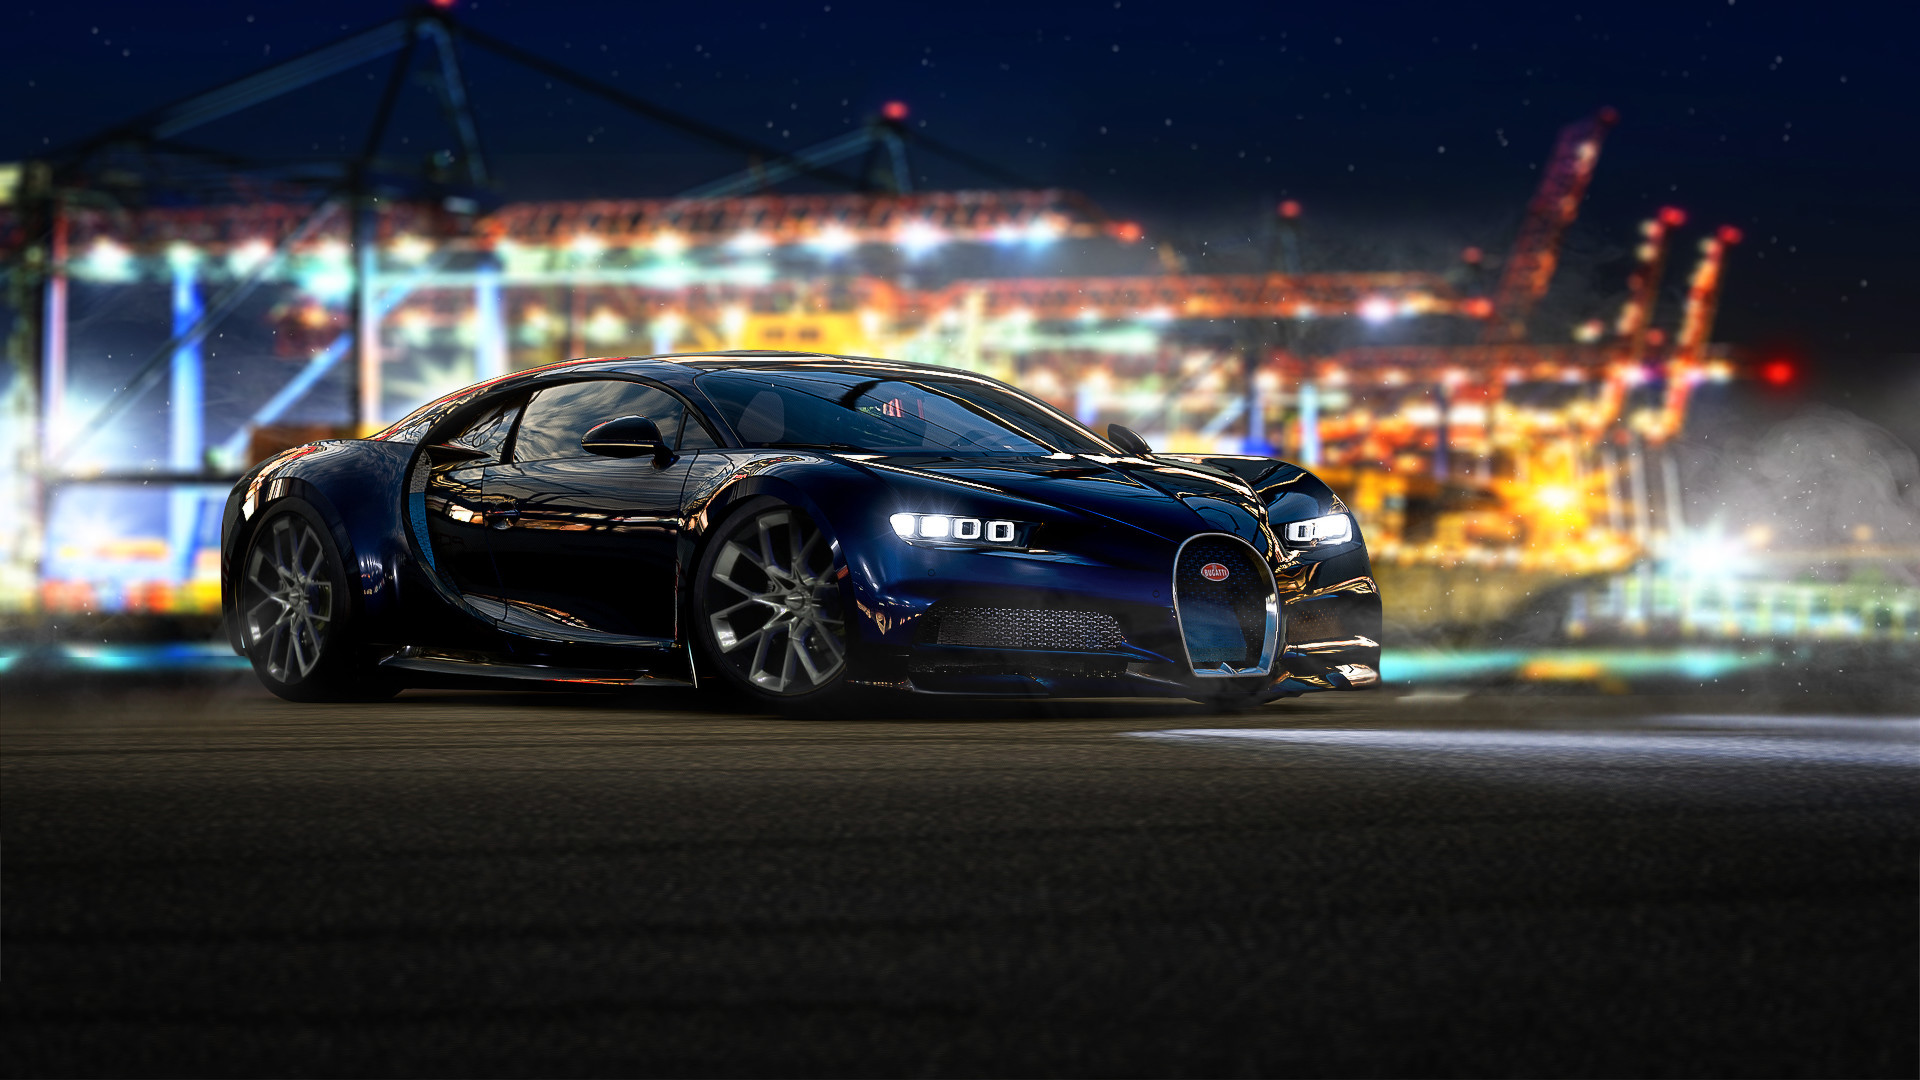 Forza motorsport 7 bugatti hd games 4k wallpapers images backgrounds photos and pictures - Forza logo wallpaper ...